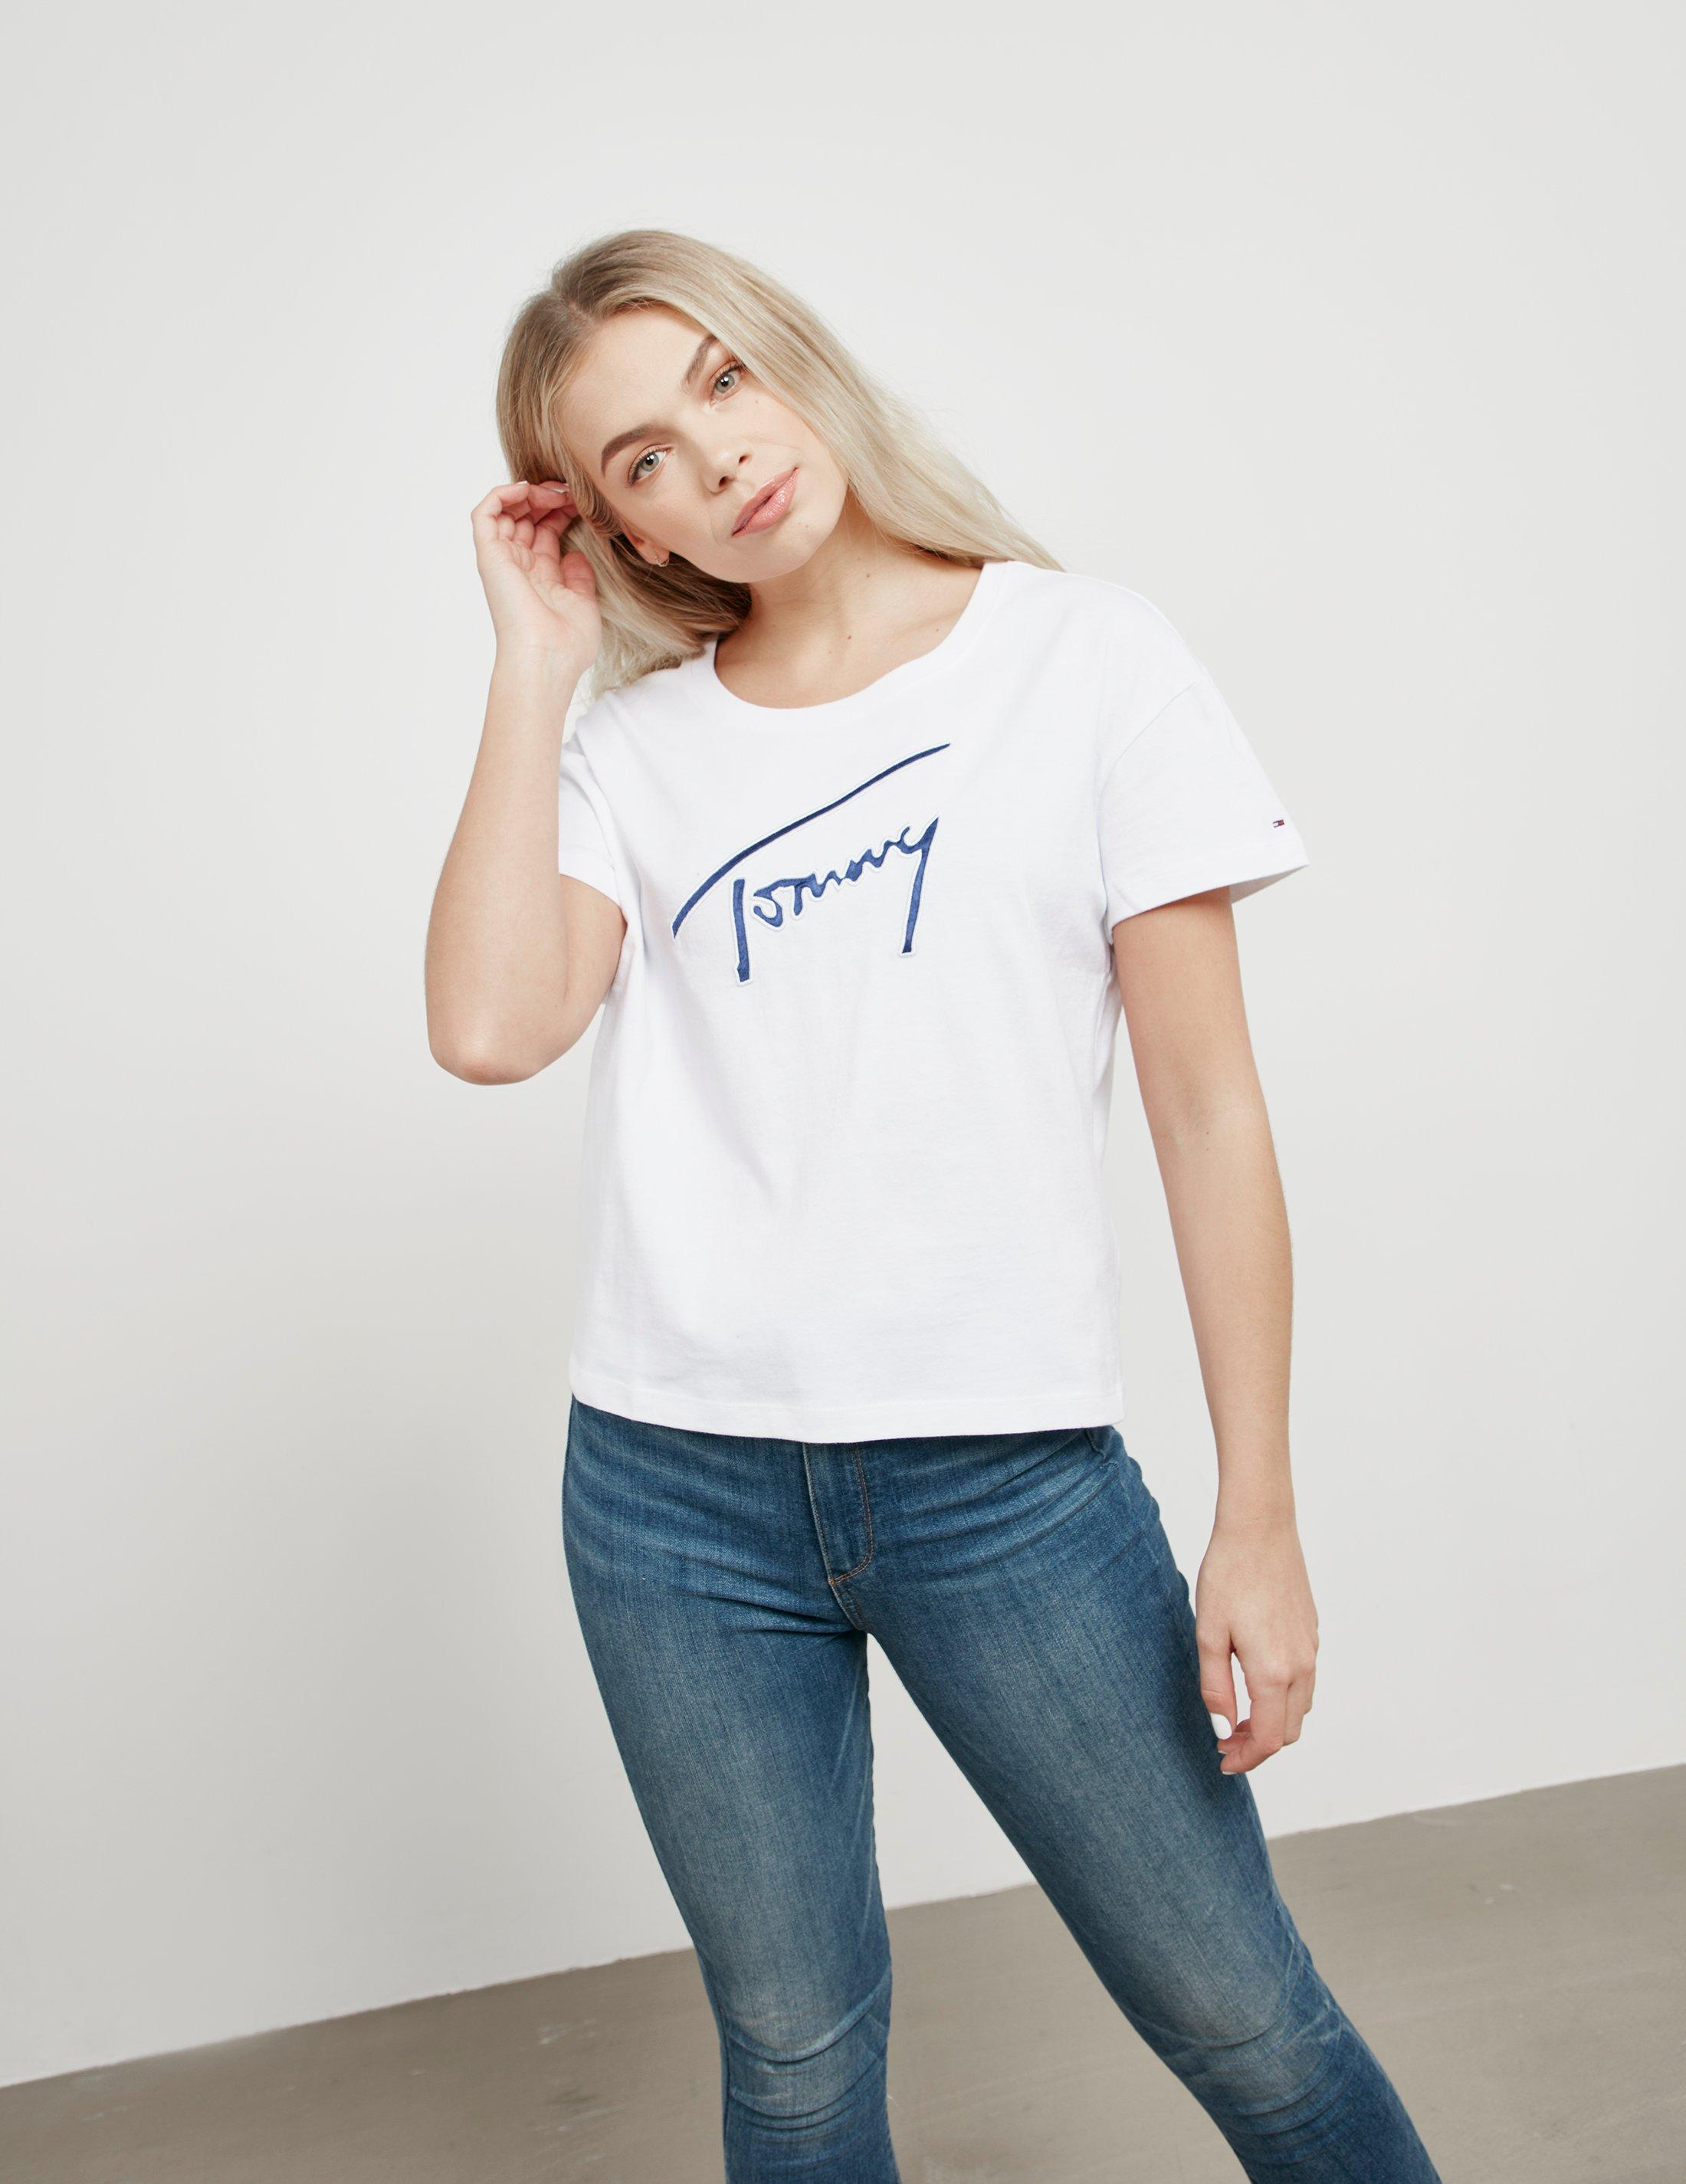 483fdcc15 Lyst - Tommy Hilfiger Signature Satin Short Sleeve T-shirt White in ...